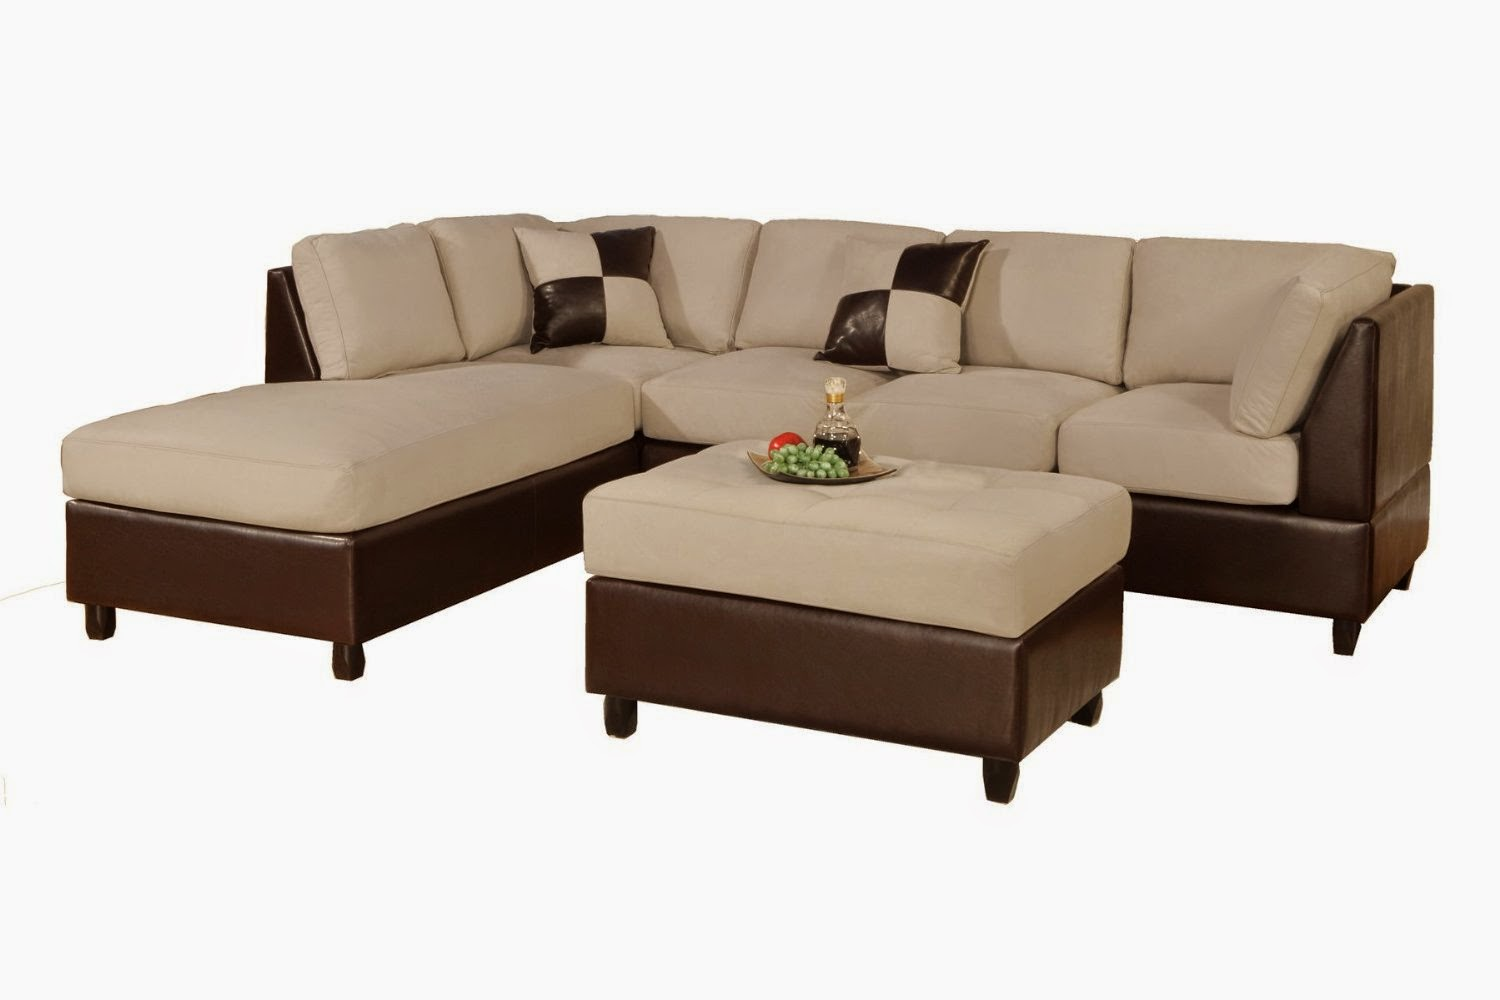 Outdoor patio furniture sofa for Inexpensive sofa sets